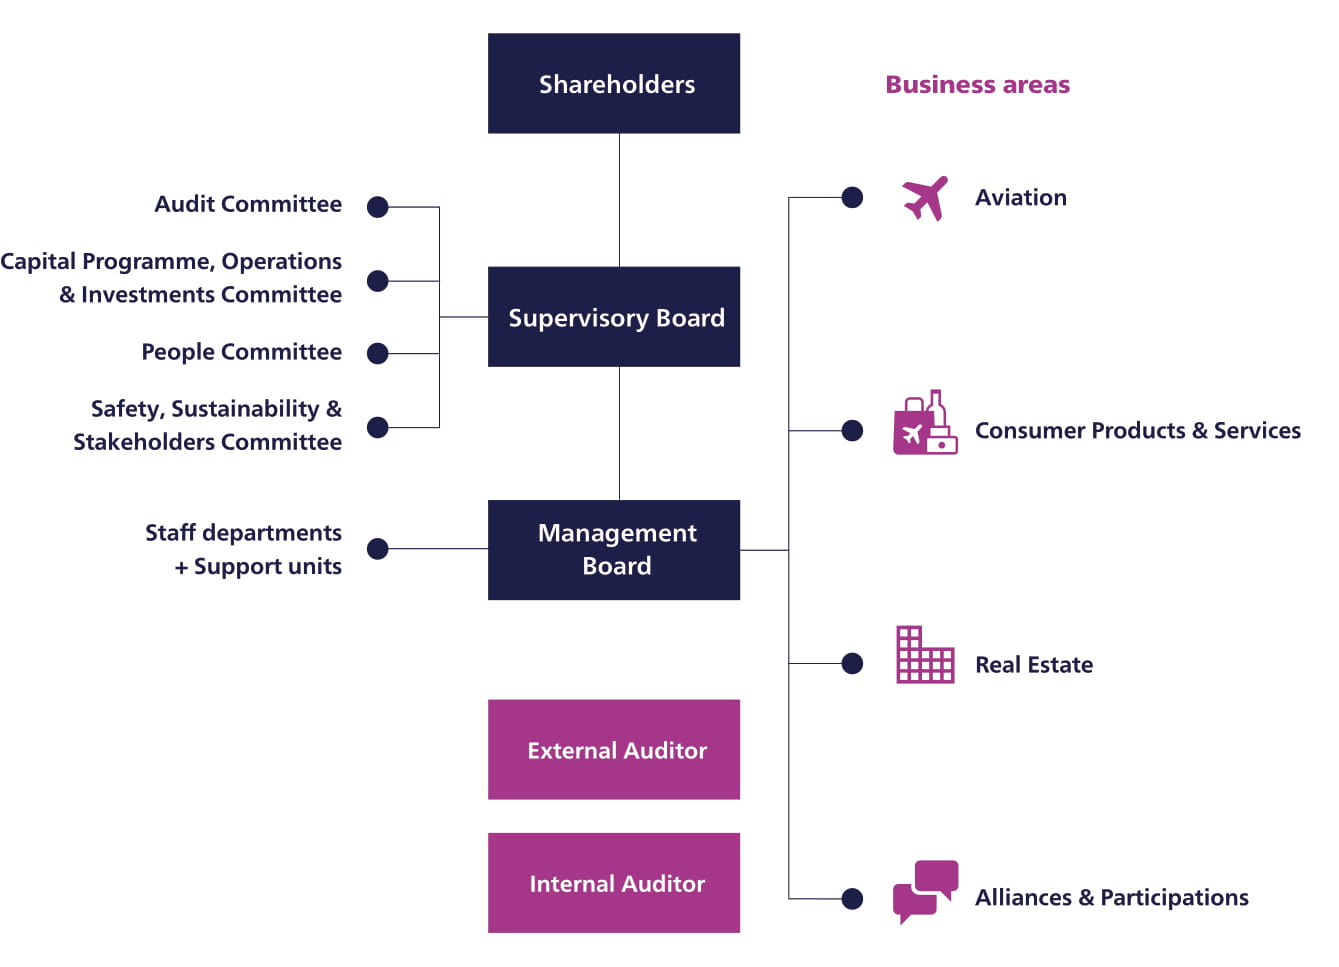 Corporate Governance within Royal Schiphol Group